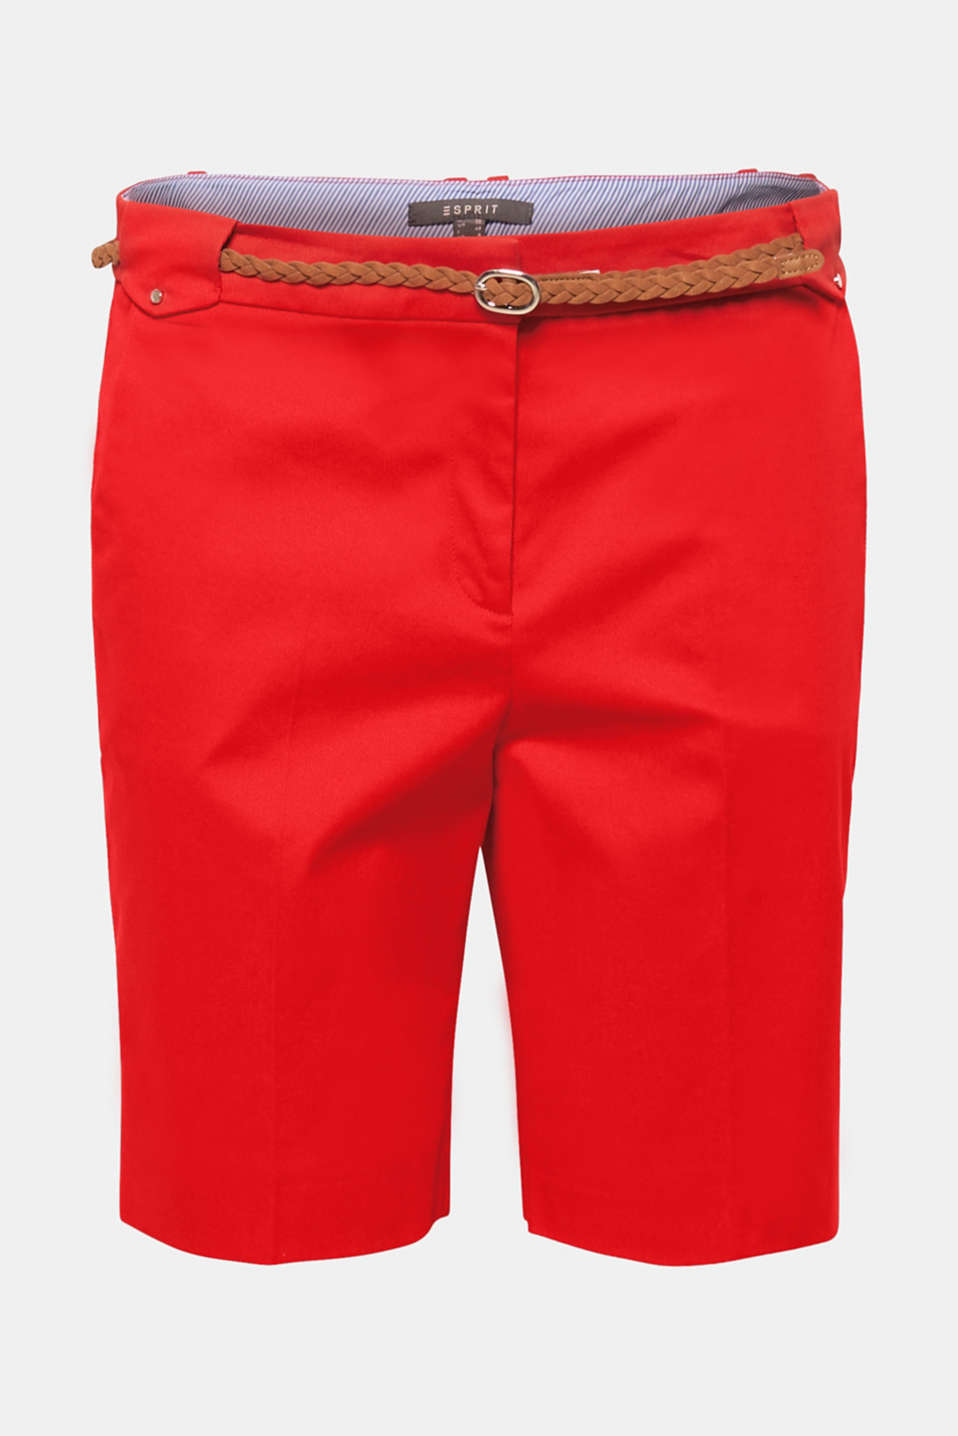 Shorts woven, ORANGE RED, detail image number 7